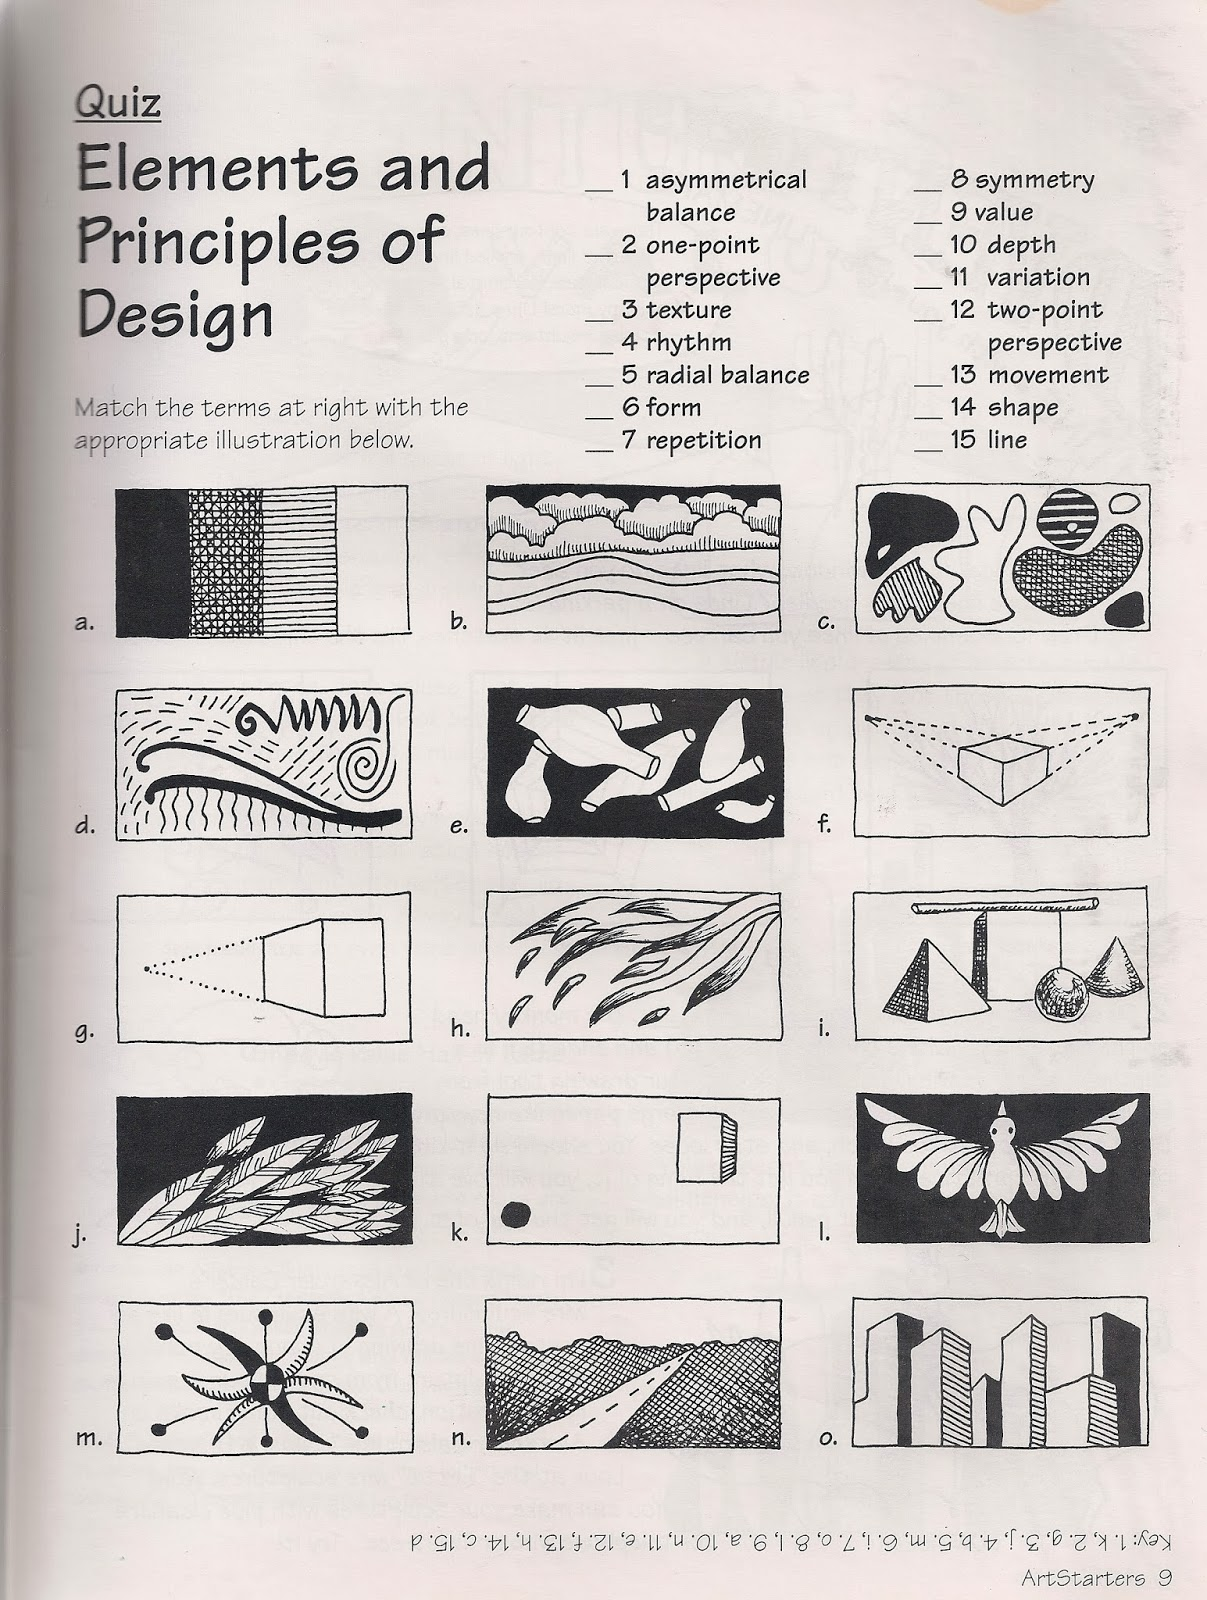 7 Principles Of Art : No corner suns the elements and principles of art free